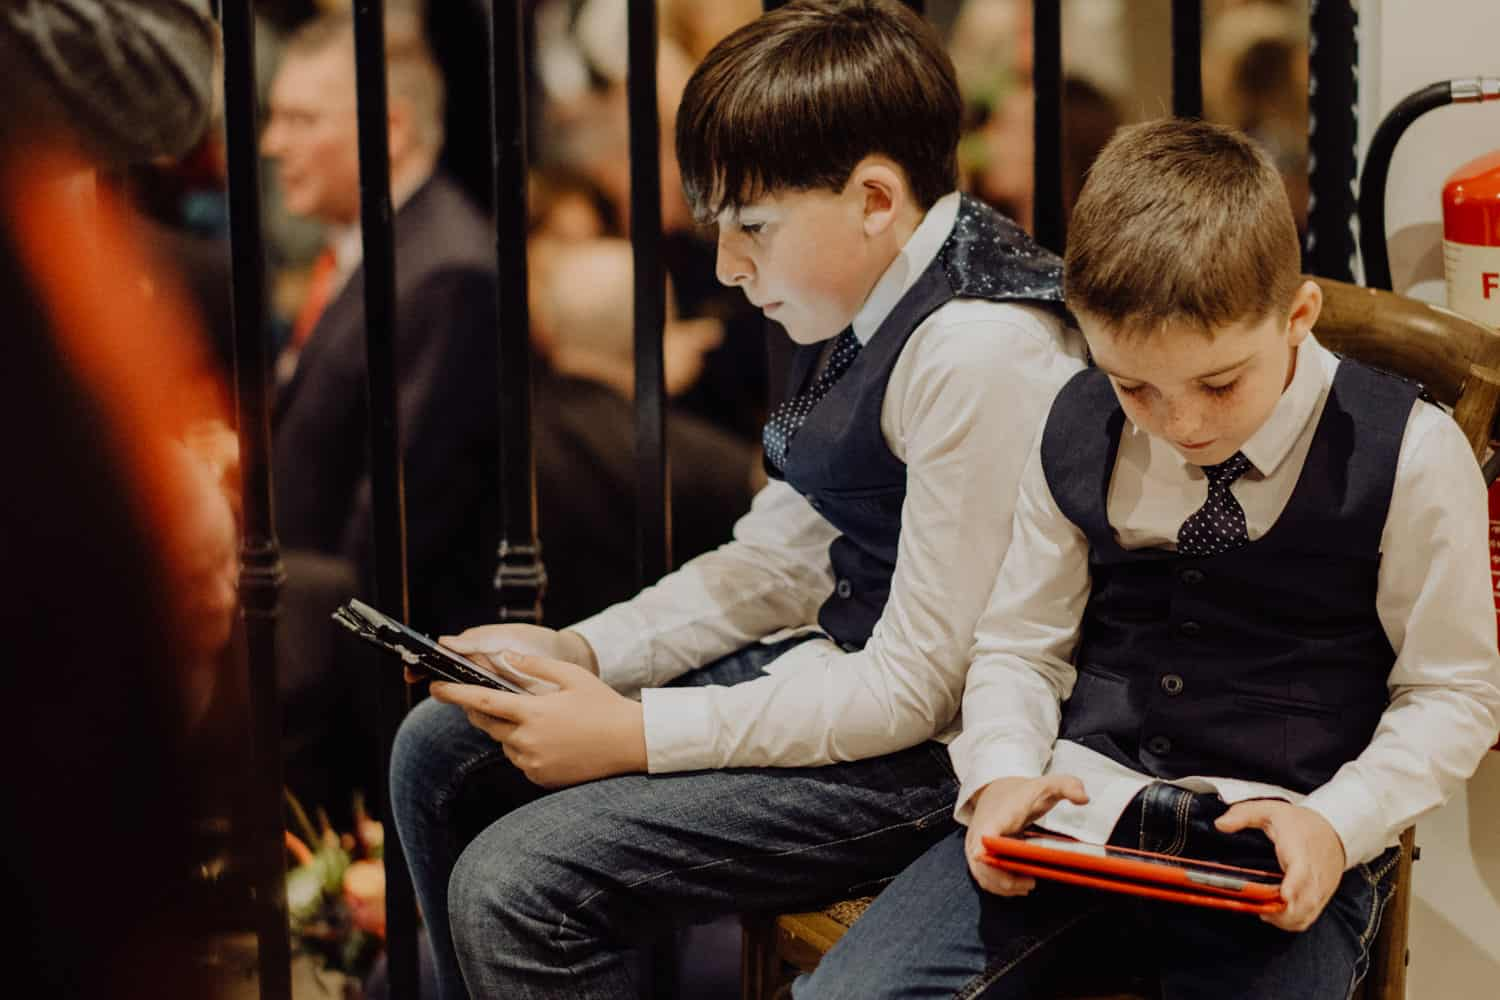 young guests in ipads